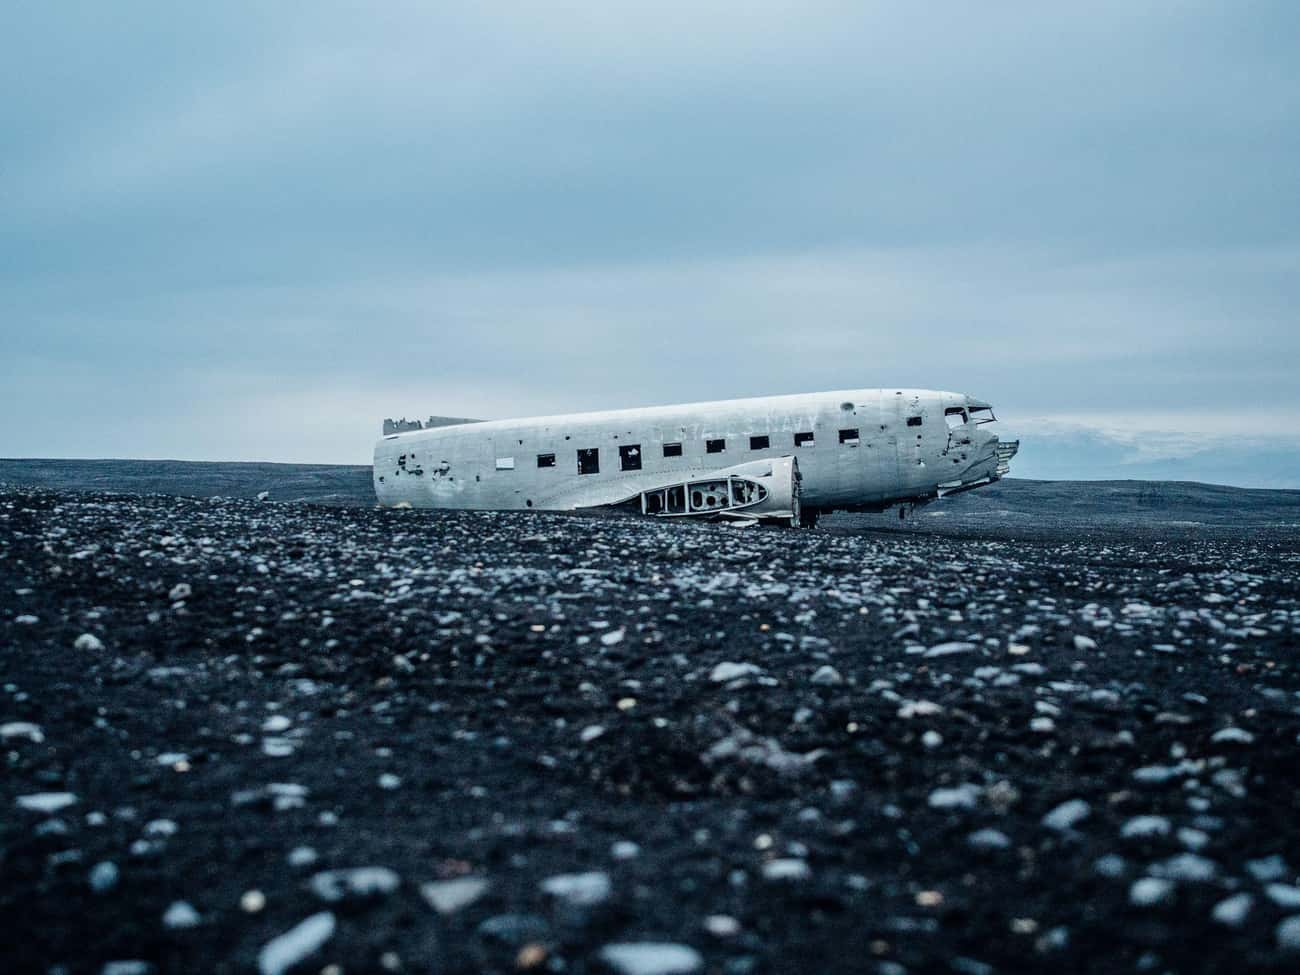 Twisted Wreckage On Sólheimasa is listed (or ranked) 3 on the list 10 Creepy Plane Wreckages In Remote Areas You Can Visit Today